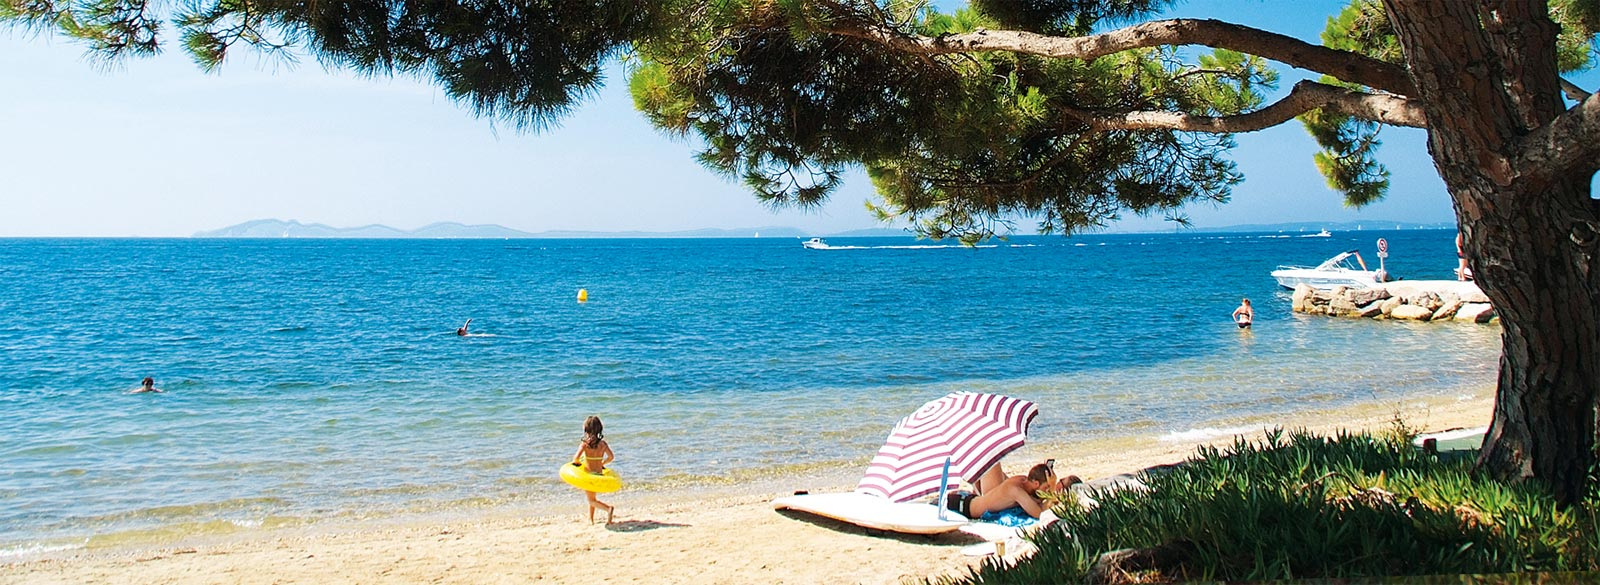 camping littoral varois - emplacement tente du camping